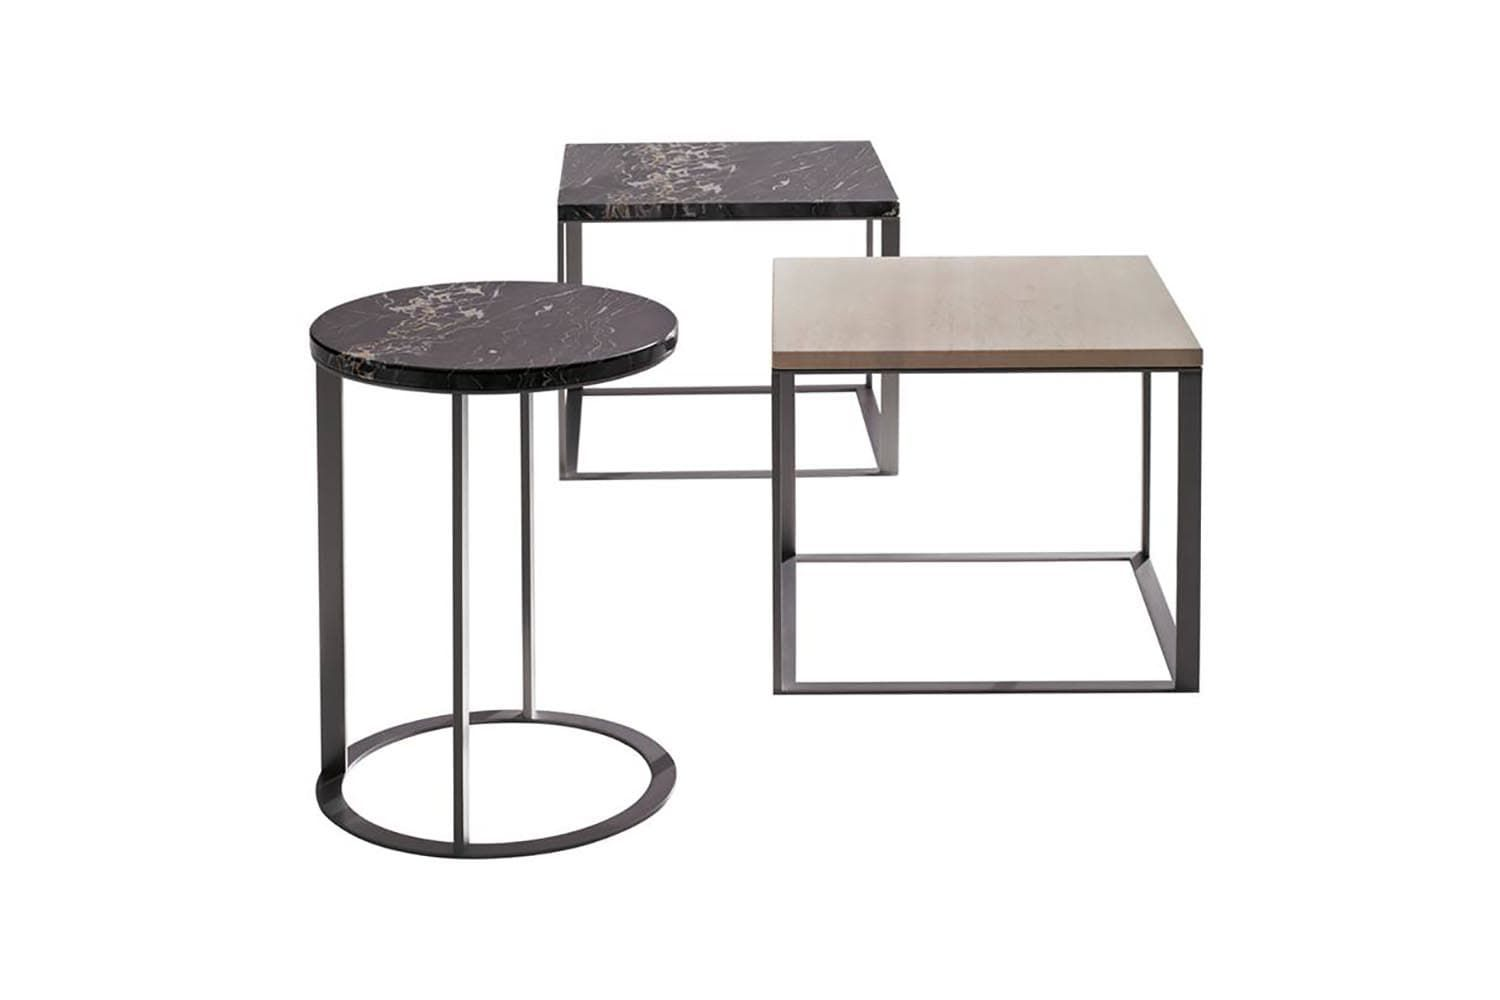 Lithos Side Coffee Table By Antonio Citterio For Maxalto Coffee Table With Stools Side Coffee Table Coffee Table